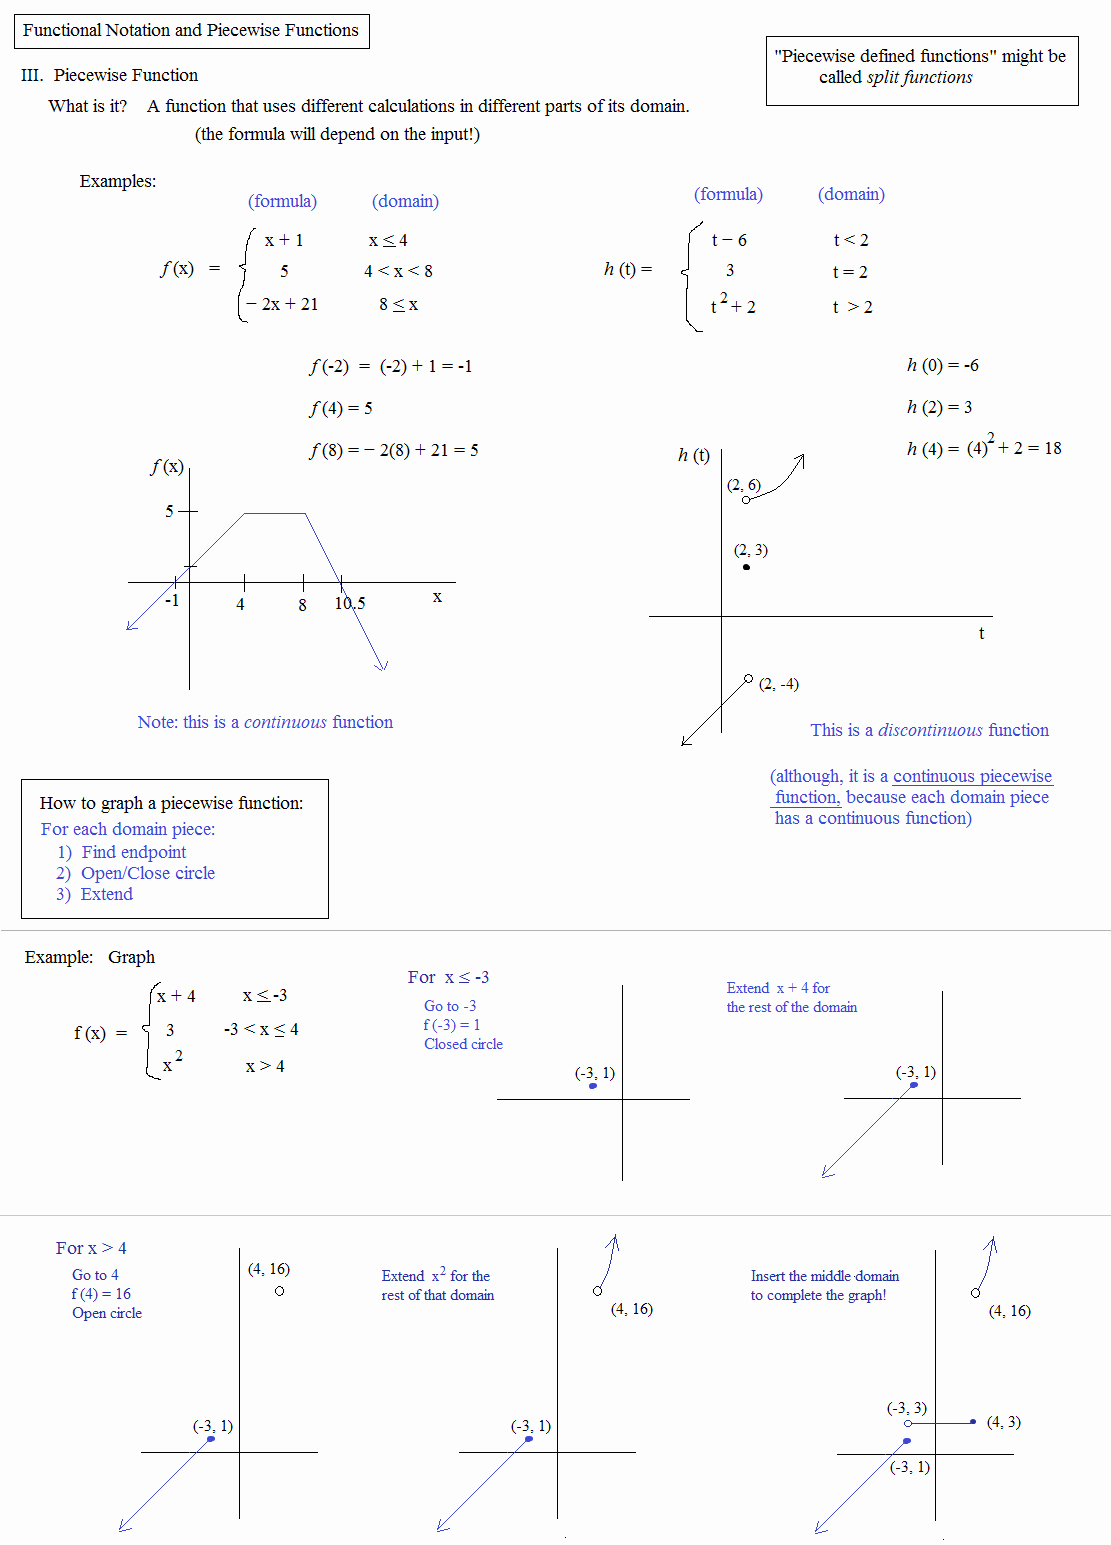 Piecewise Functions Worksheet with Answers Unique Piecewise Functions Worksheet 1 Answers Math Worksheets